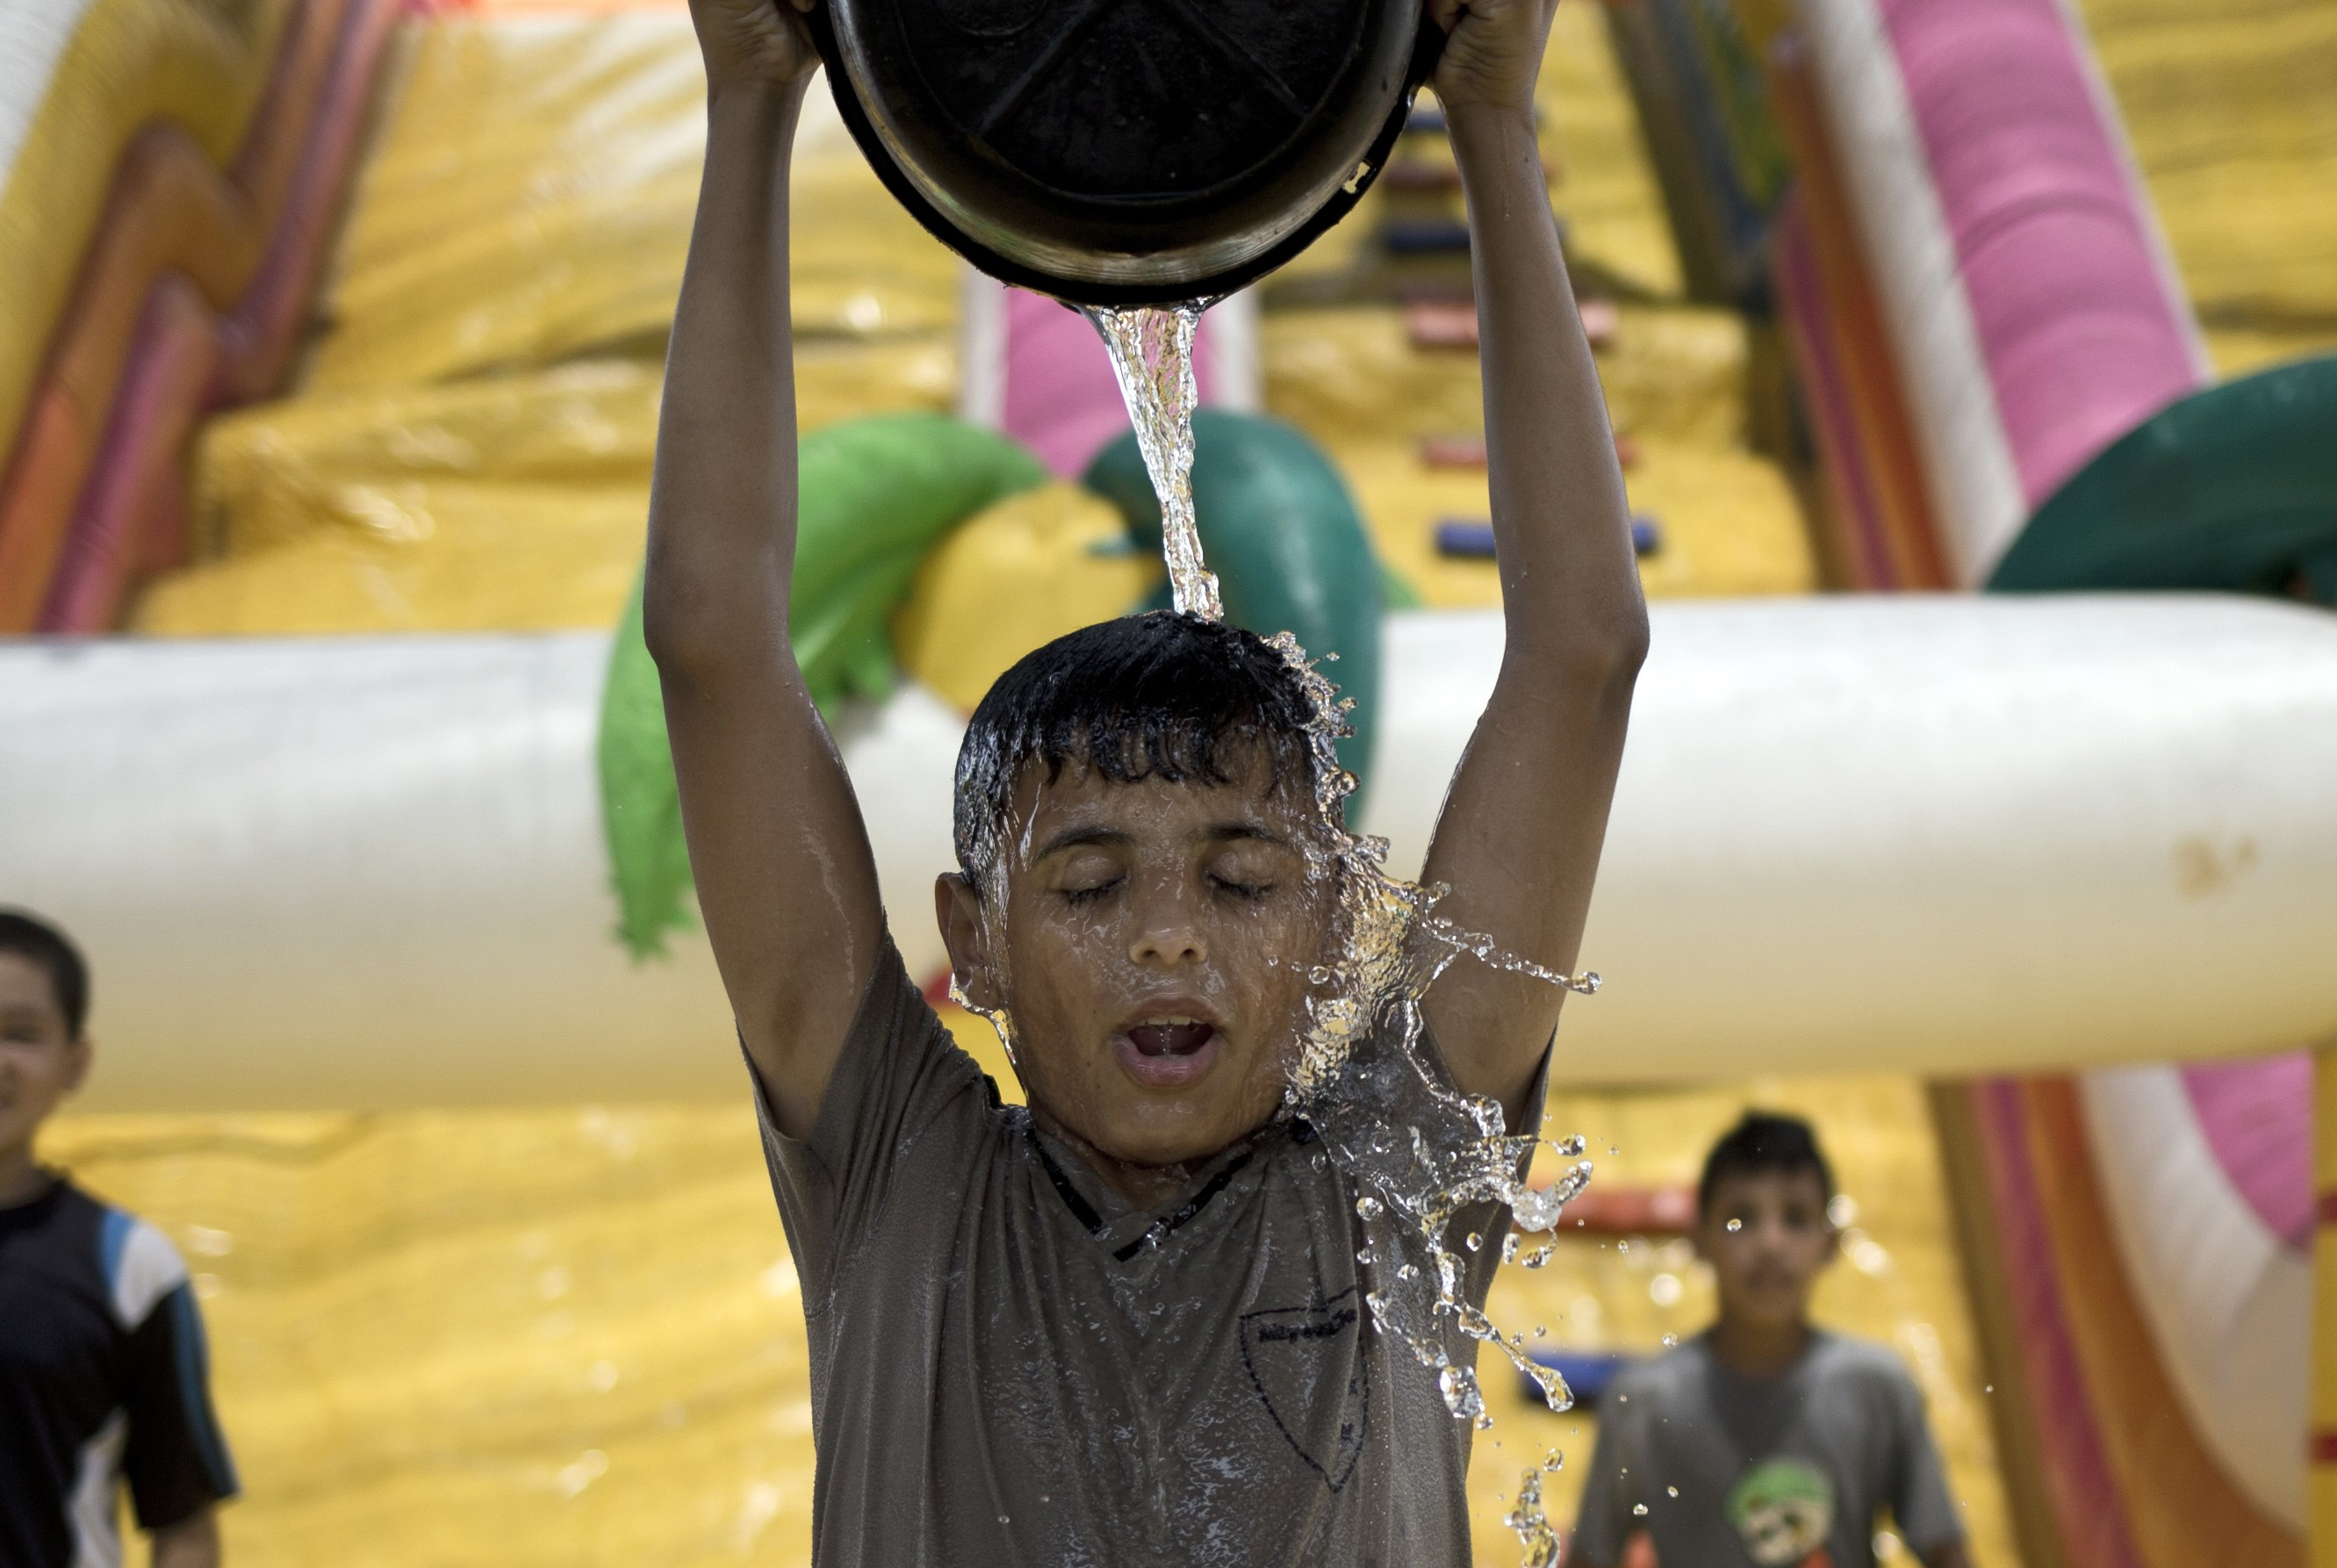 A Palestinian boy empties a bucket of water on his head in Gaza City on Aug. 3, 2015, during a sweltering heat wave.